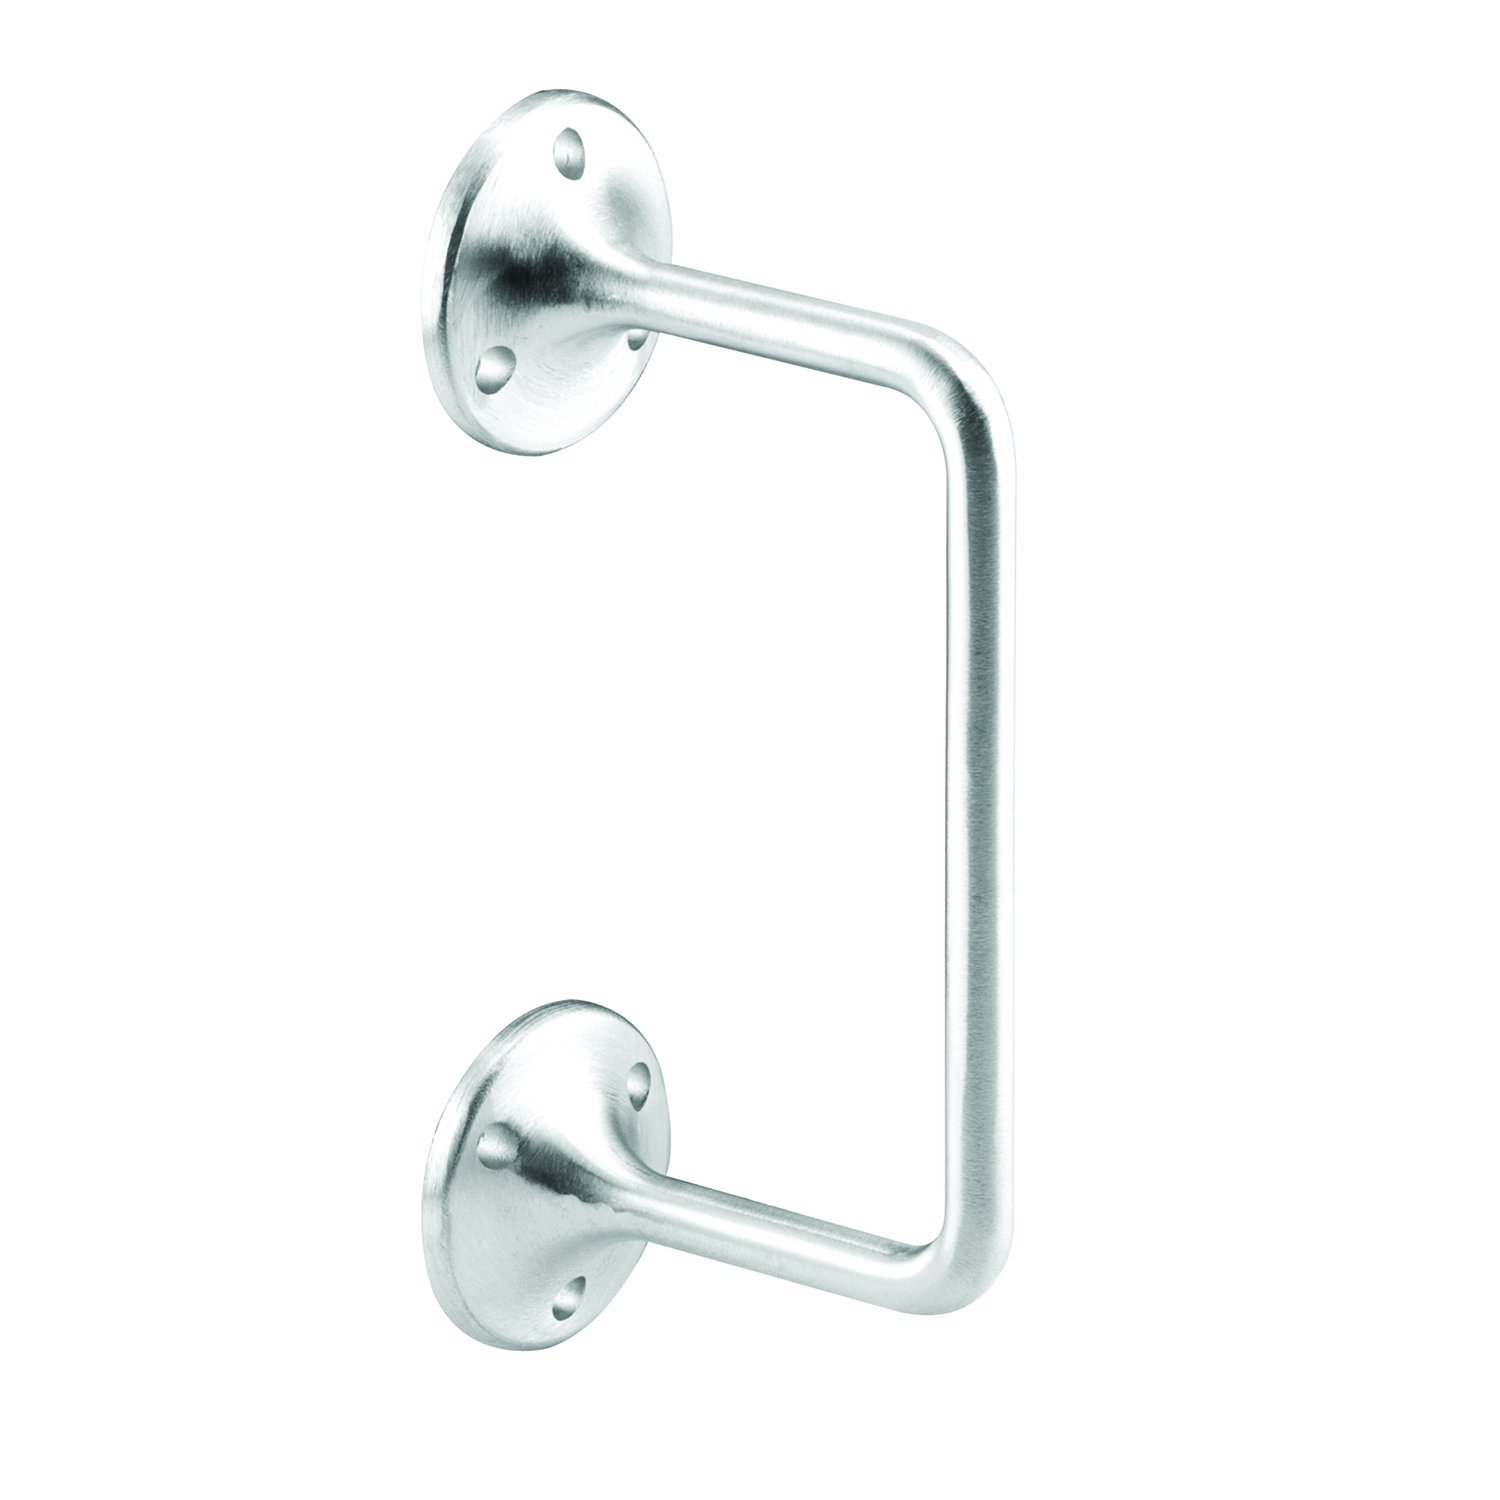 Sentry Supply 650-9867 High Rise Partition Door Pull 3 inch High Satin Cast Stainless Steel Pack of 1 ADA Complaint